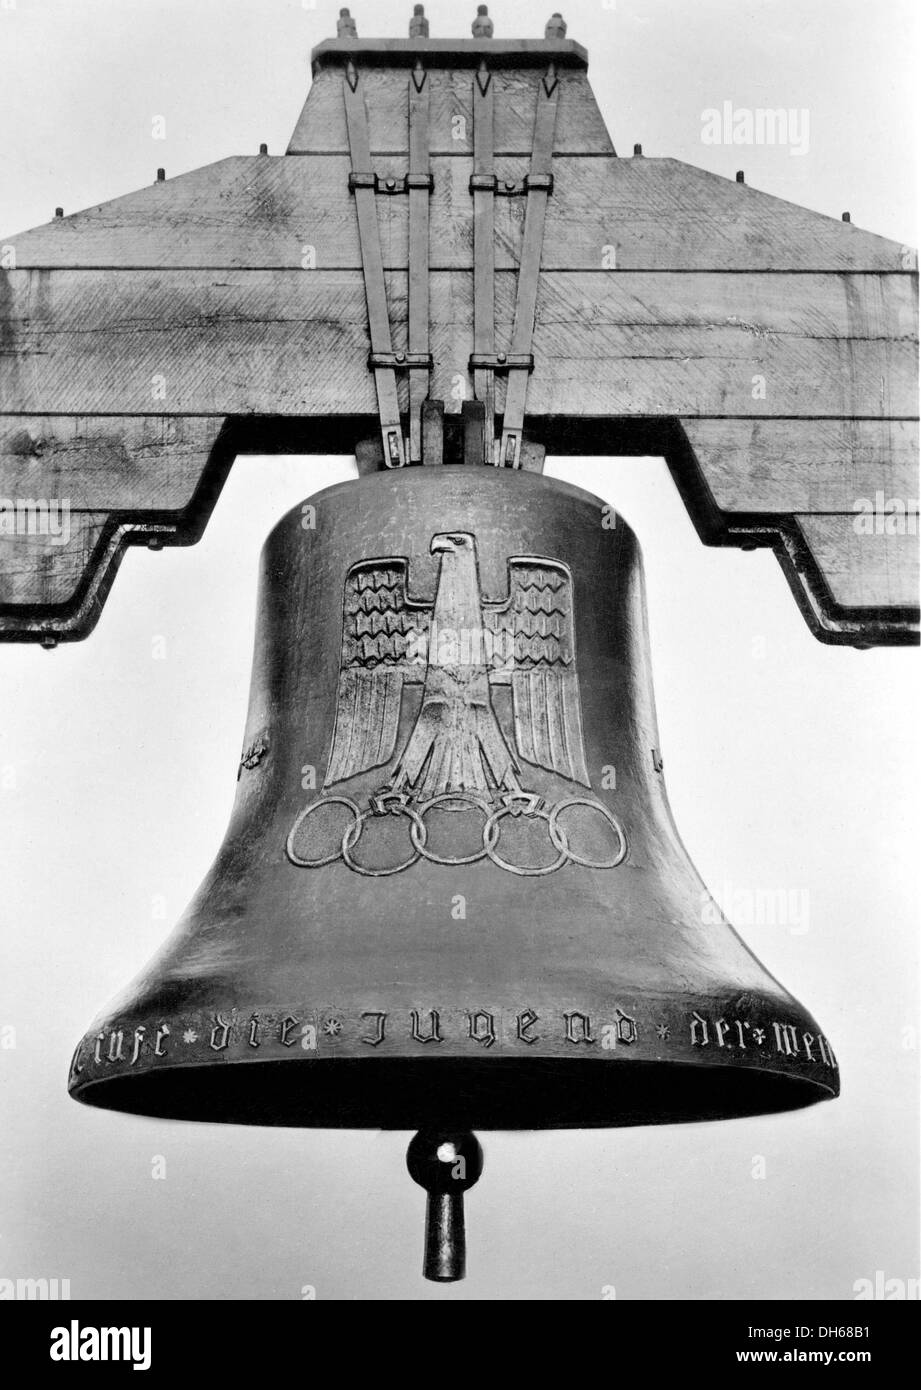 Bell at olympic stadium historical image 1936 olympic for Doorbell in german